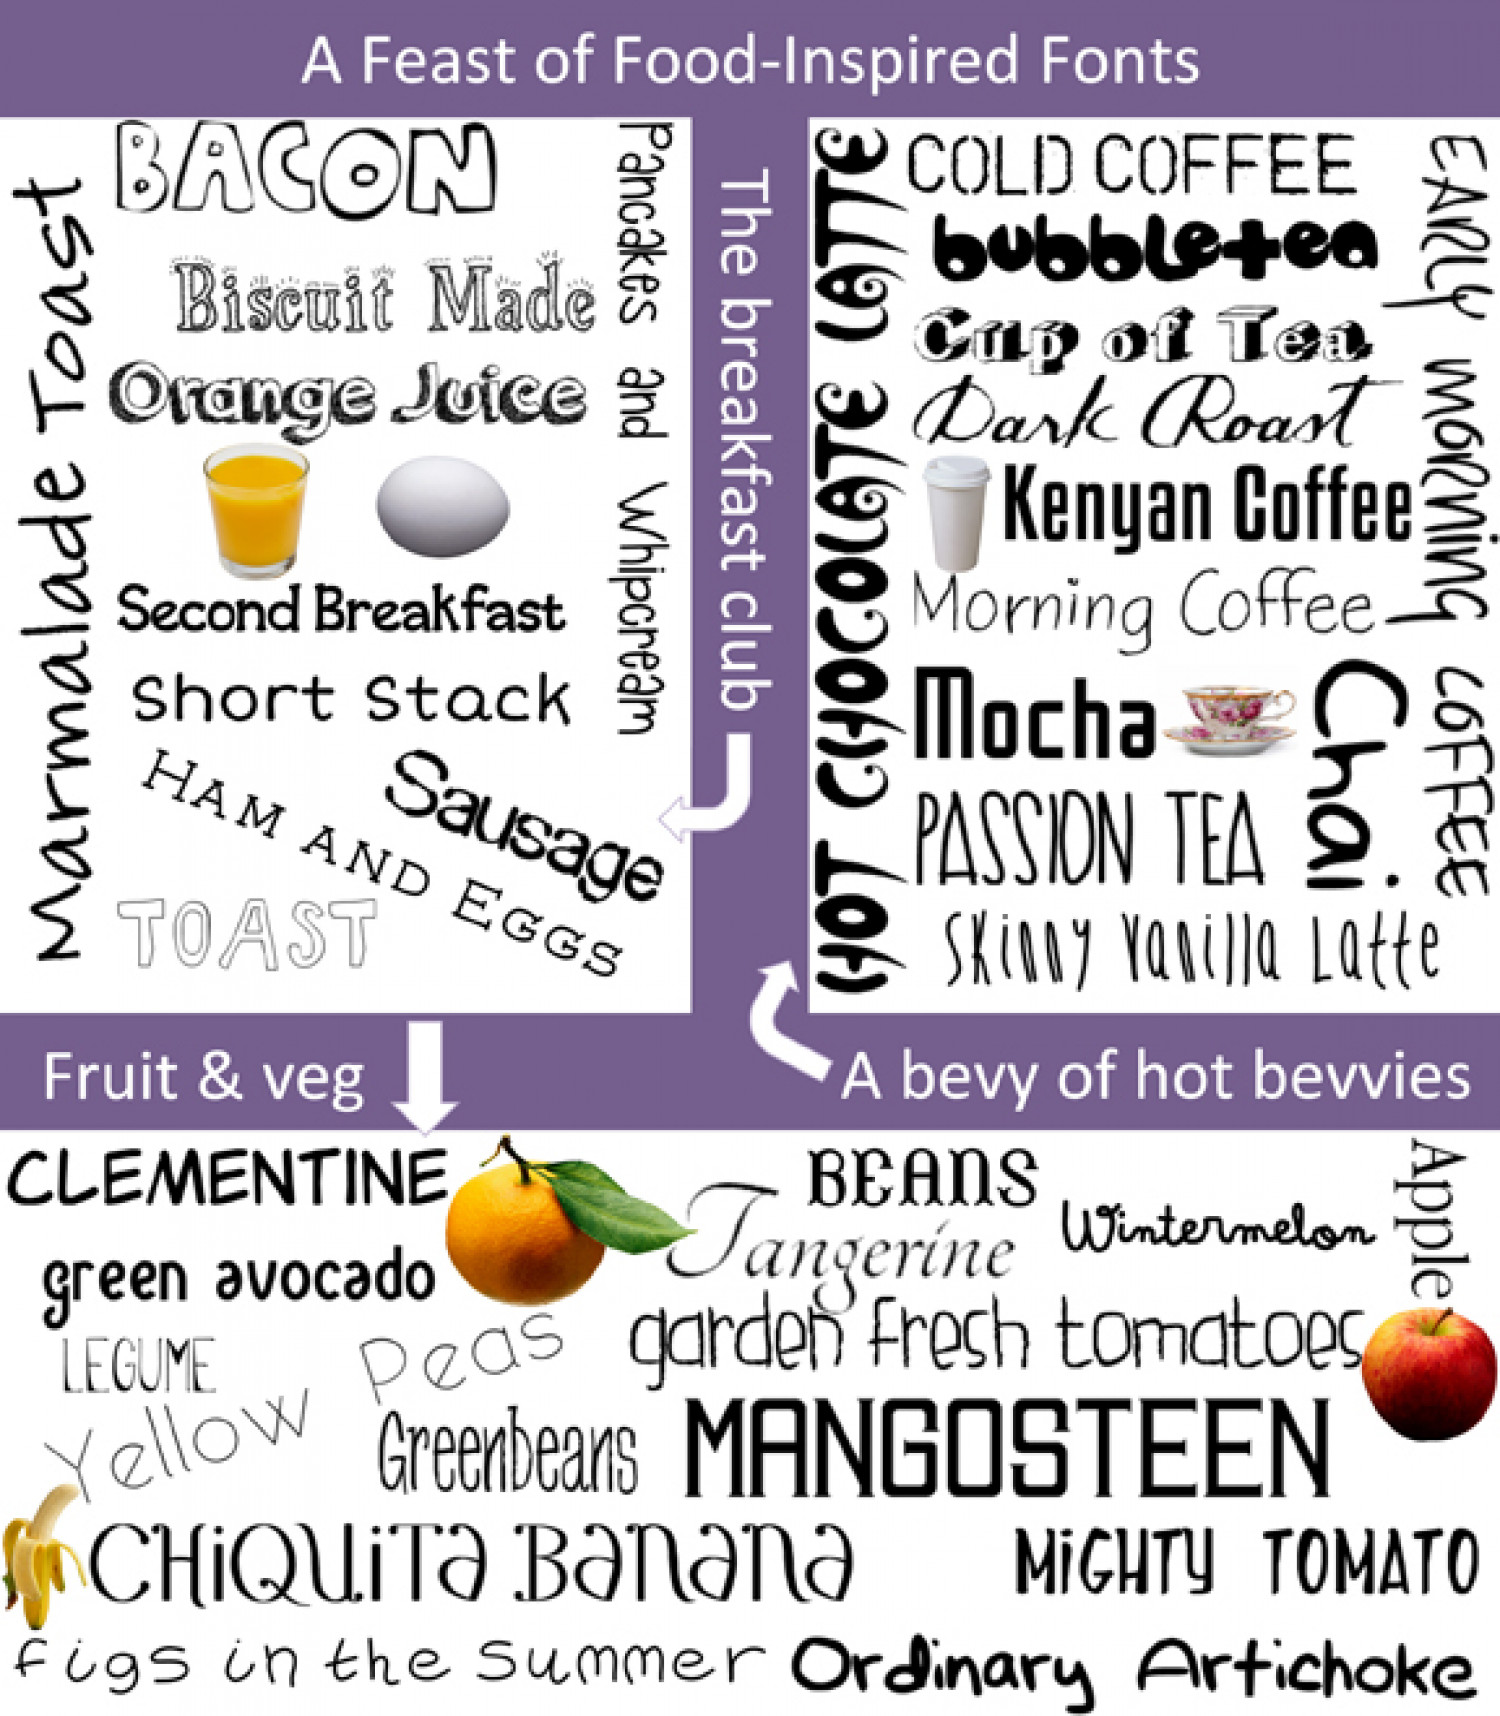 A Feast of Food-Inspired Fonts Infographic